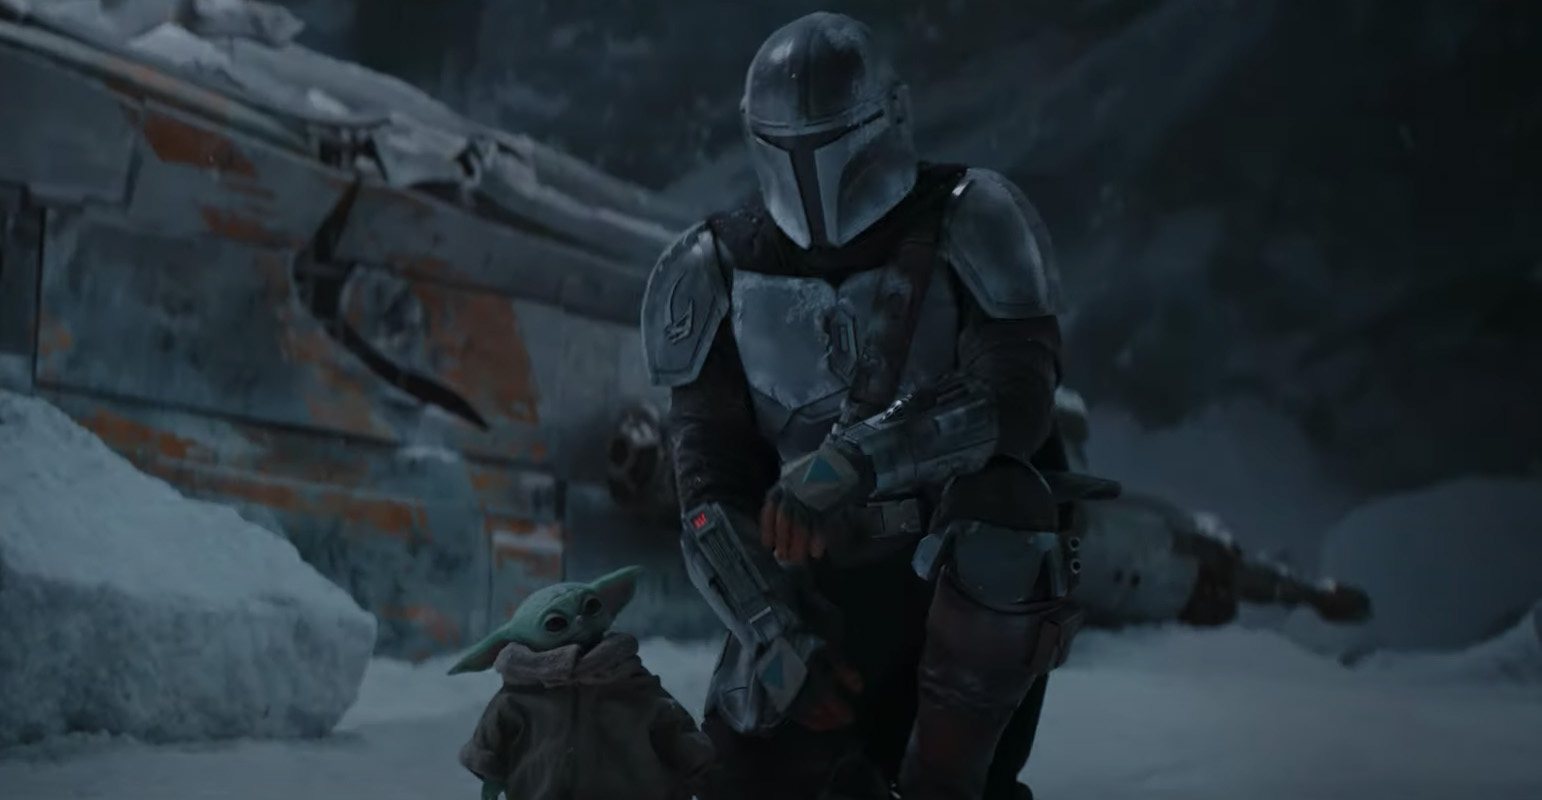 Mandalore the Great! Checa el tráiler de la 2da temporada de 'The Mandalorian'Mandalore the Great! Checa el tráiler de la 2da temporada de 'The Mandalorian'